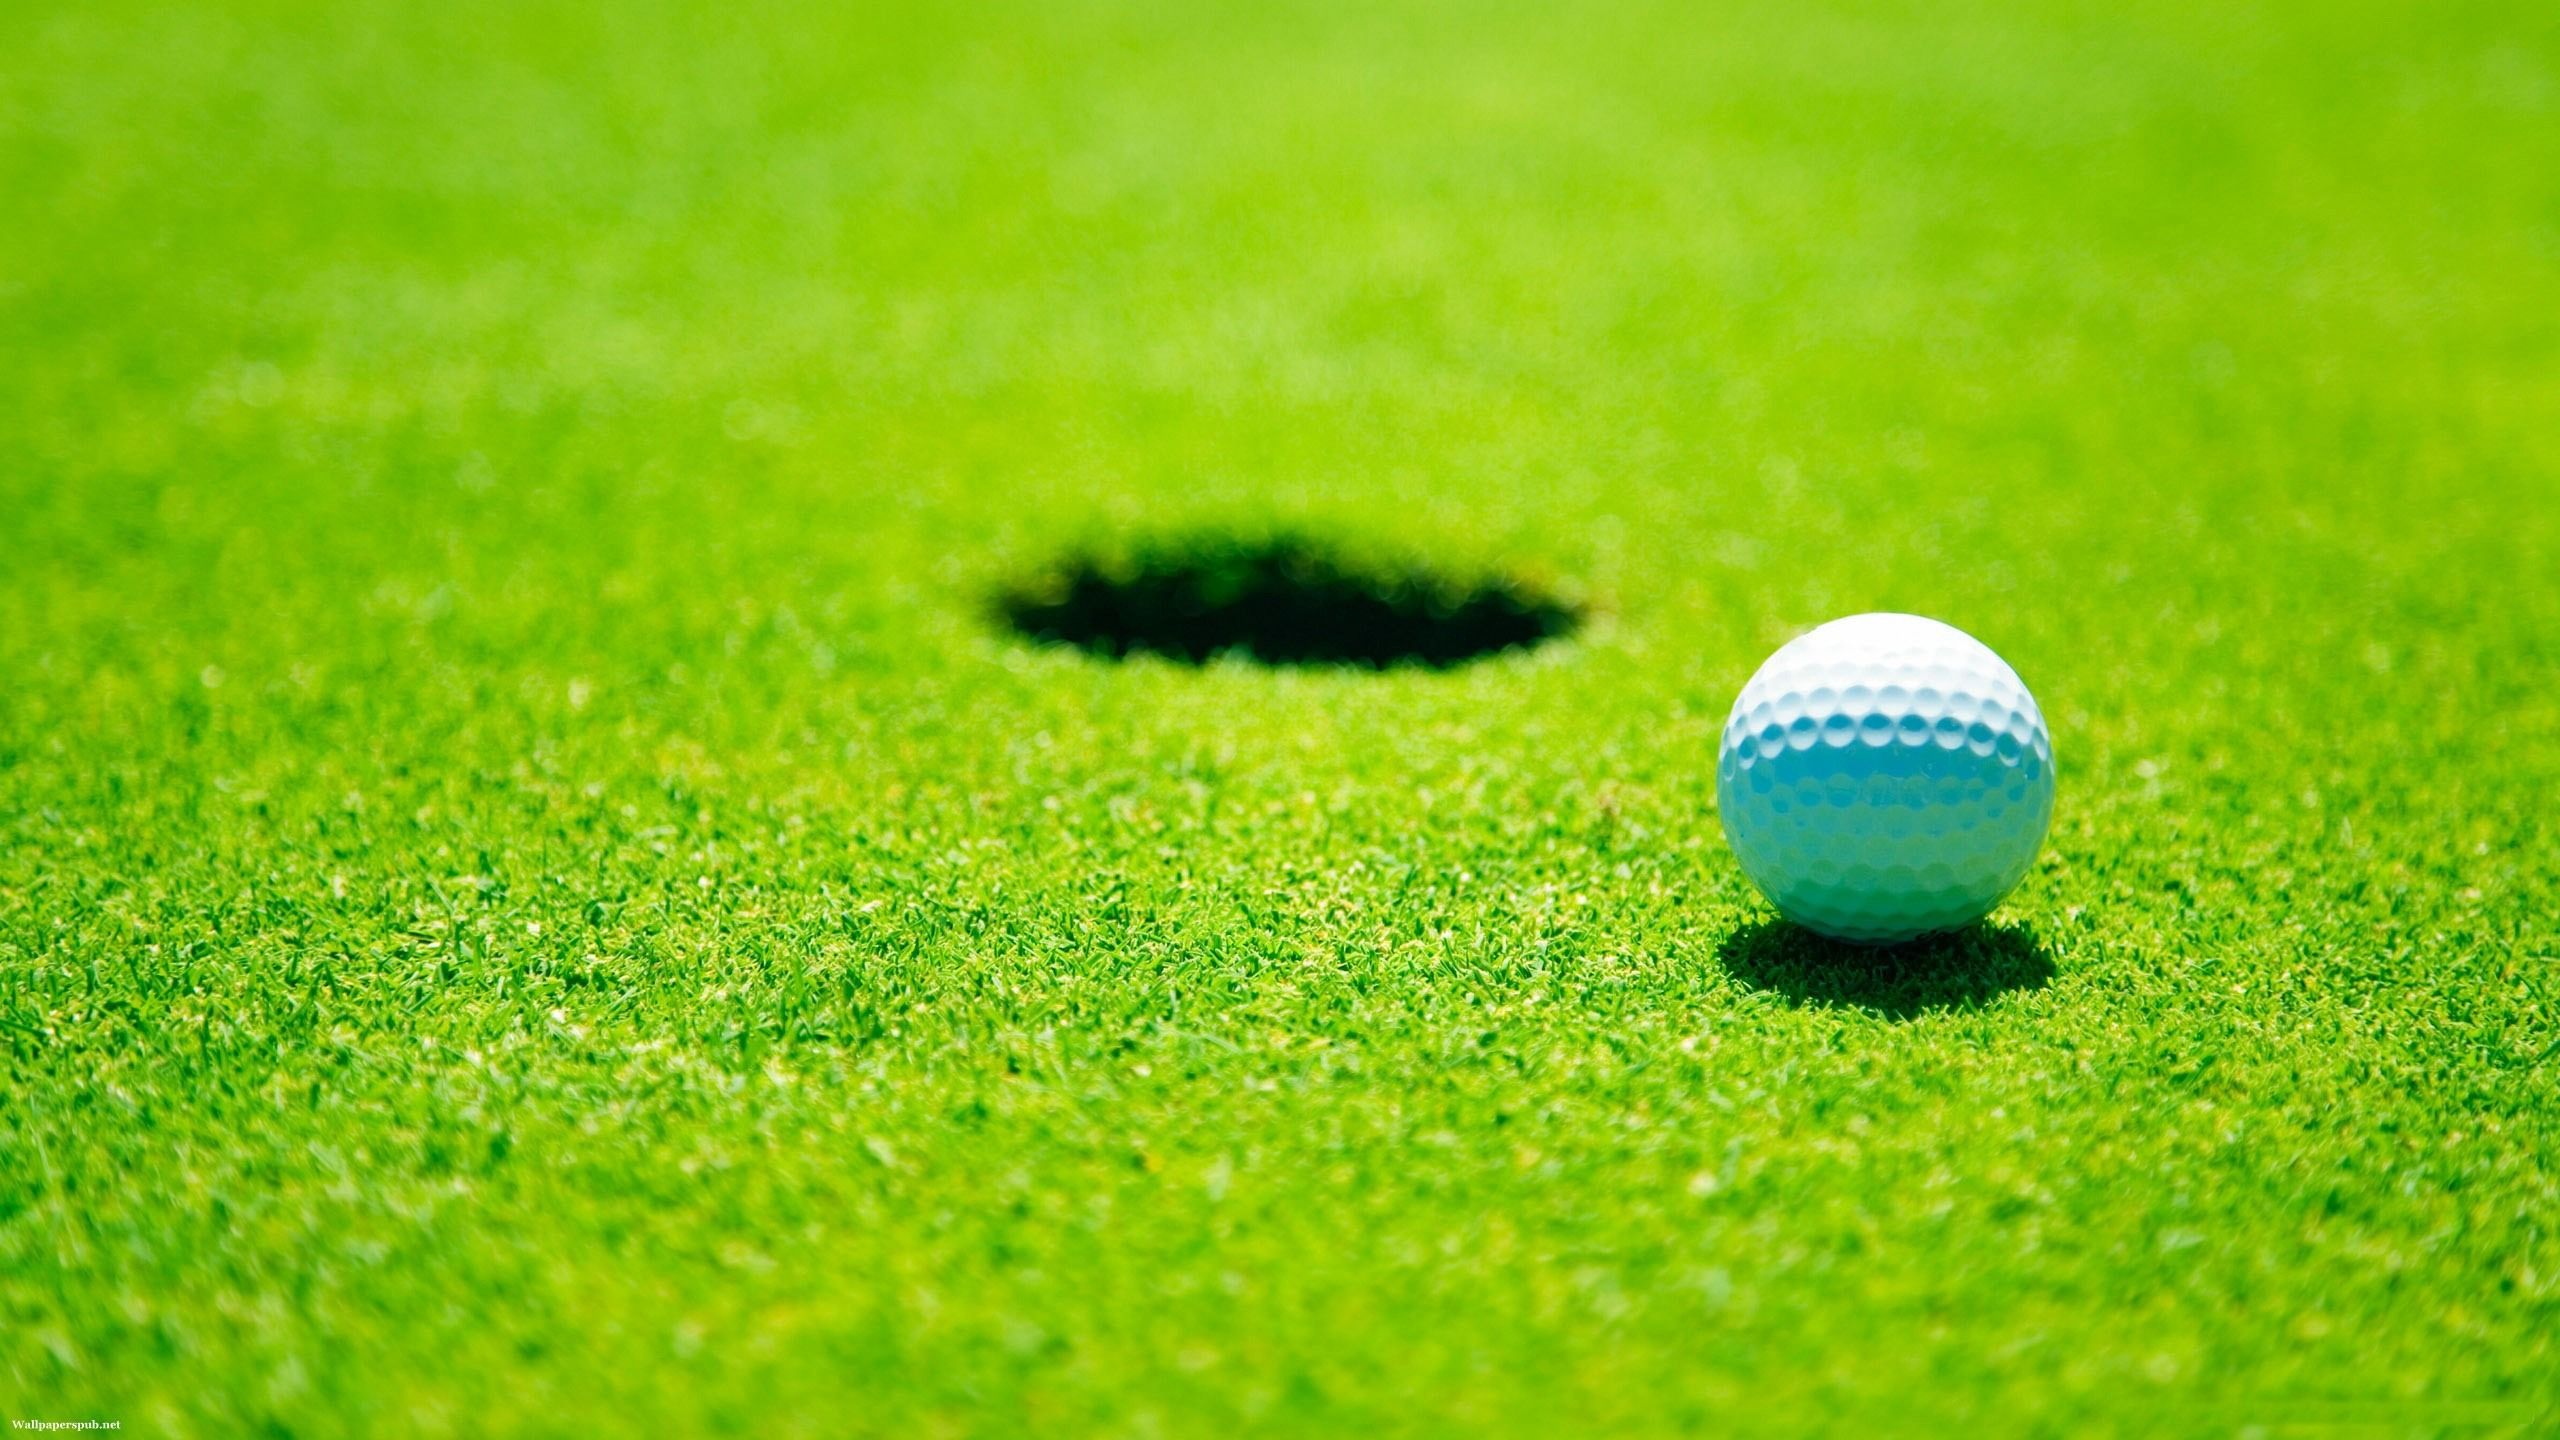 Golf Wallpapers Hd Wallpapers Laptop Wallpapers Golf Ball Golf Pictures Golf Courses